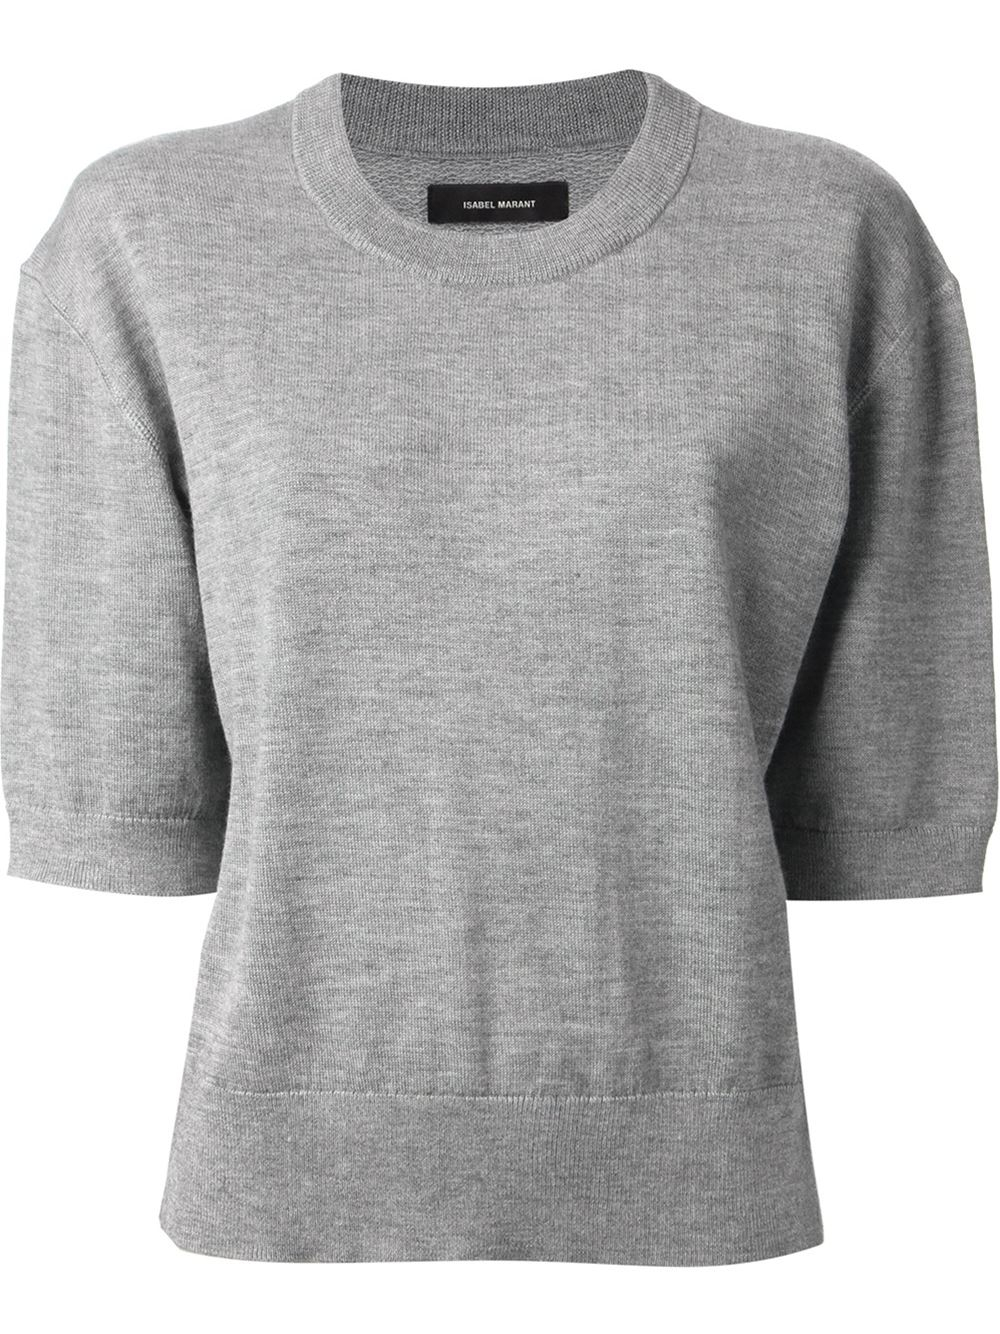 Isabel marant Short Sleeve Sweater in Gray | Lyst